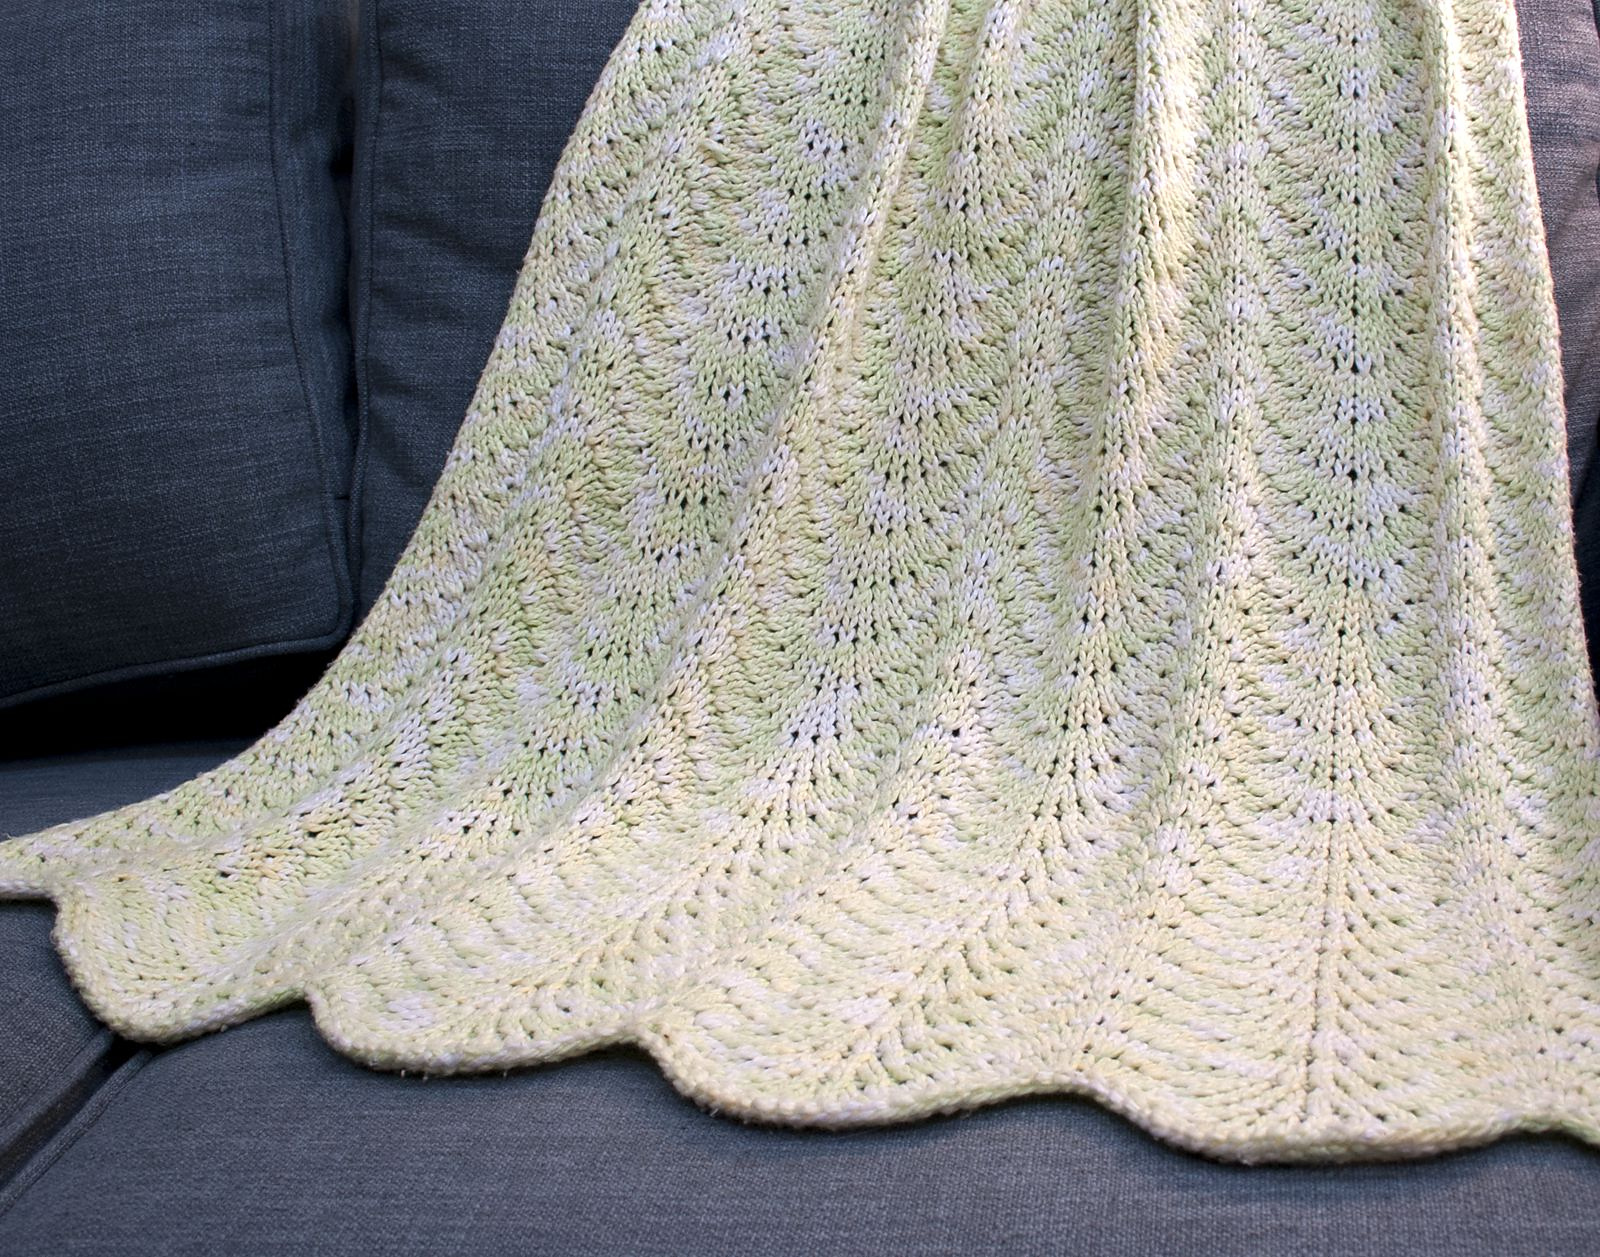 100 cotton knit blanket in worsted weight Blue sky yarn - free knitting pattern